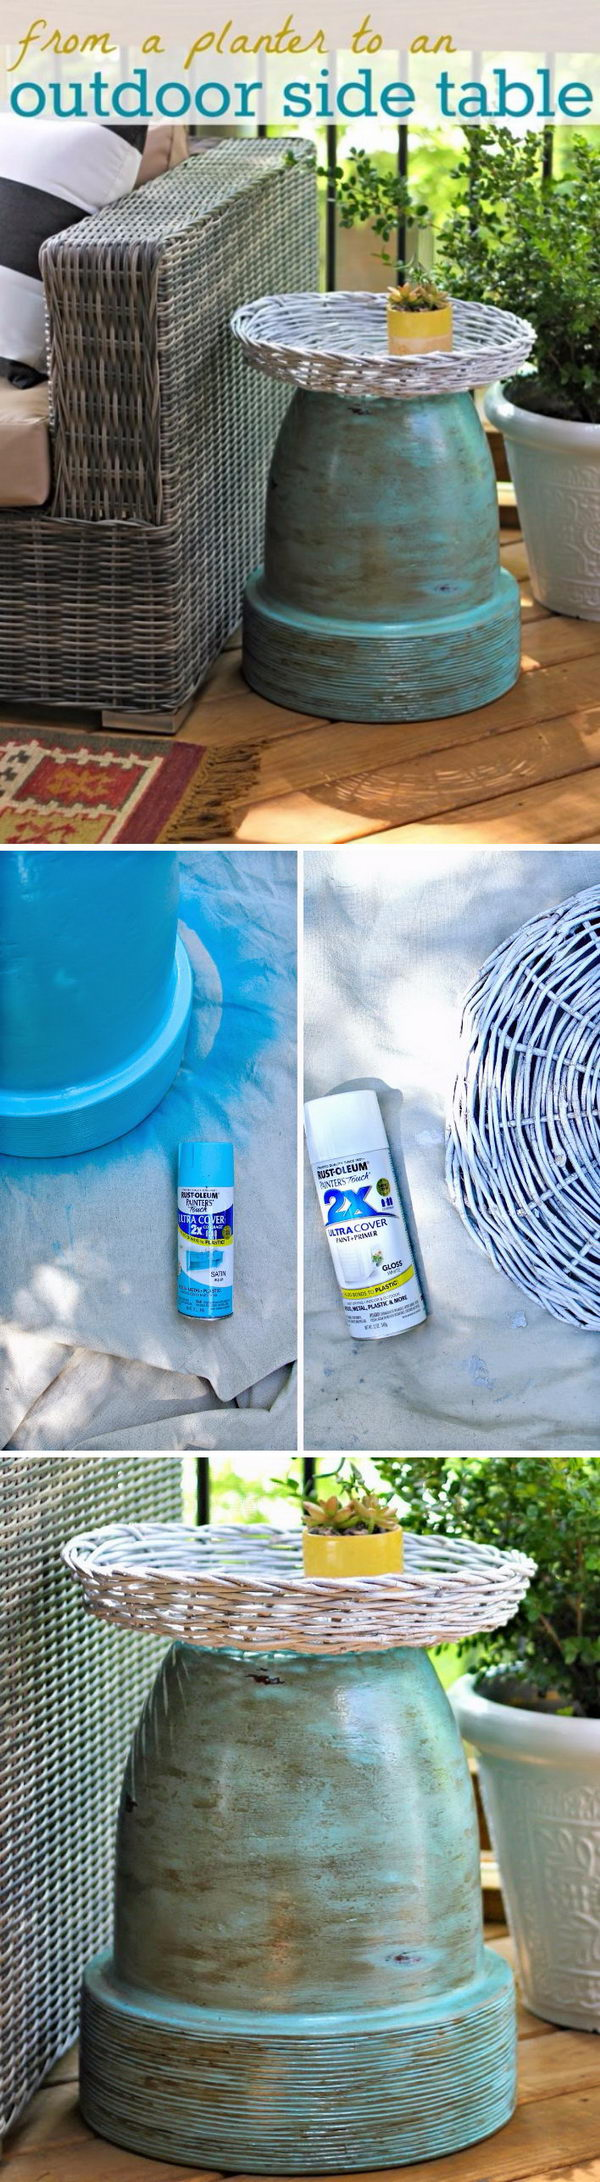 awesome diy side table ideas for outdoors and indoors hative tutorials outdoor blue terracotta pot ultra modern lamps fur furniture patio end clearance mosaic antique round wood